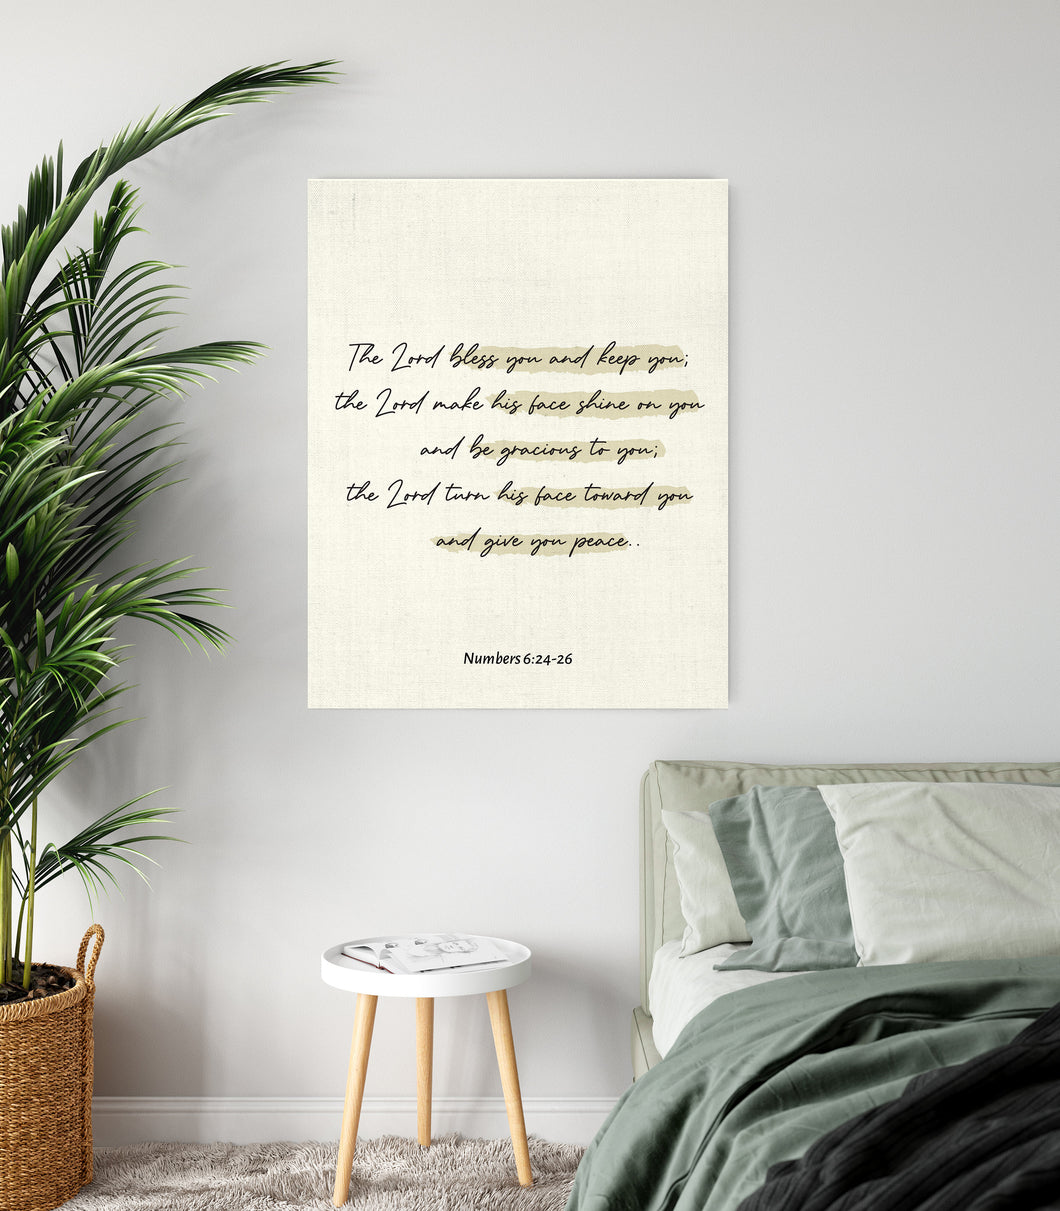 Biblical Wall Art Canvas Decor Christian Gifts for All Occasions. Explore Now!